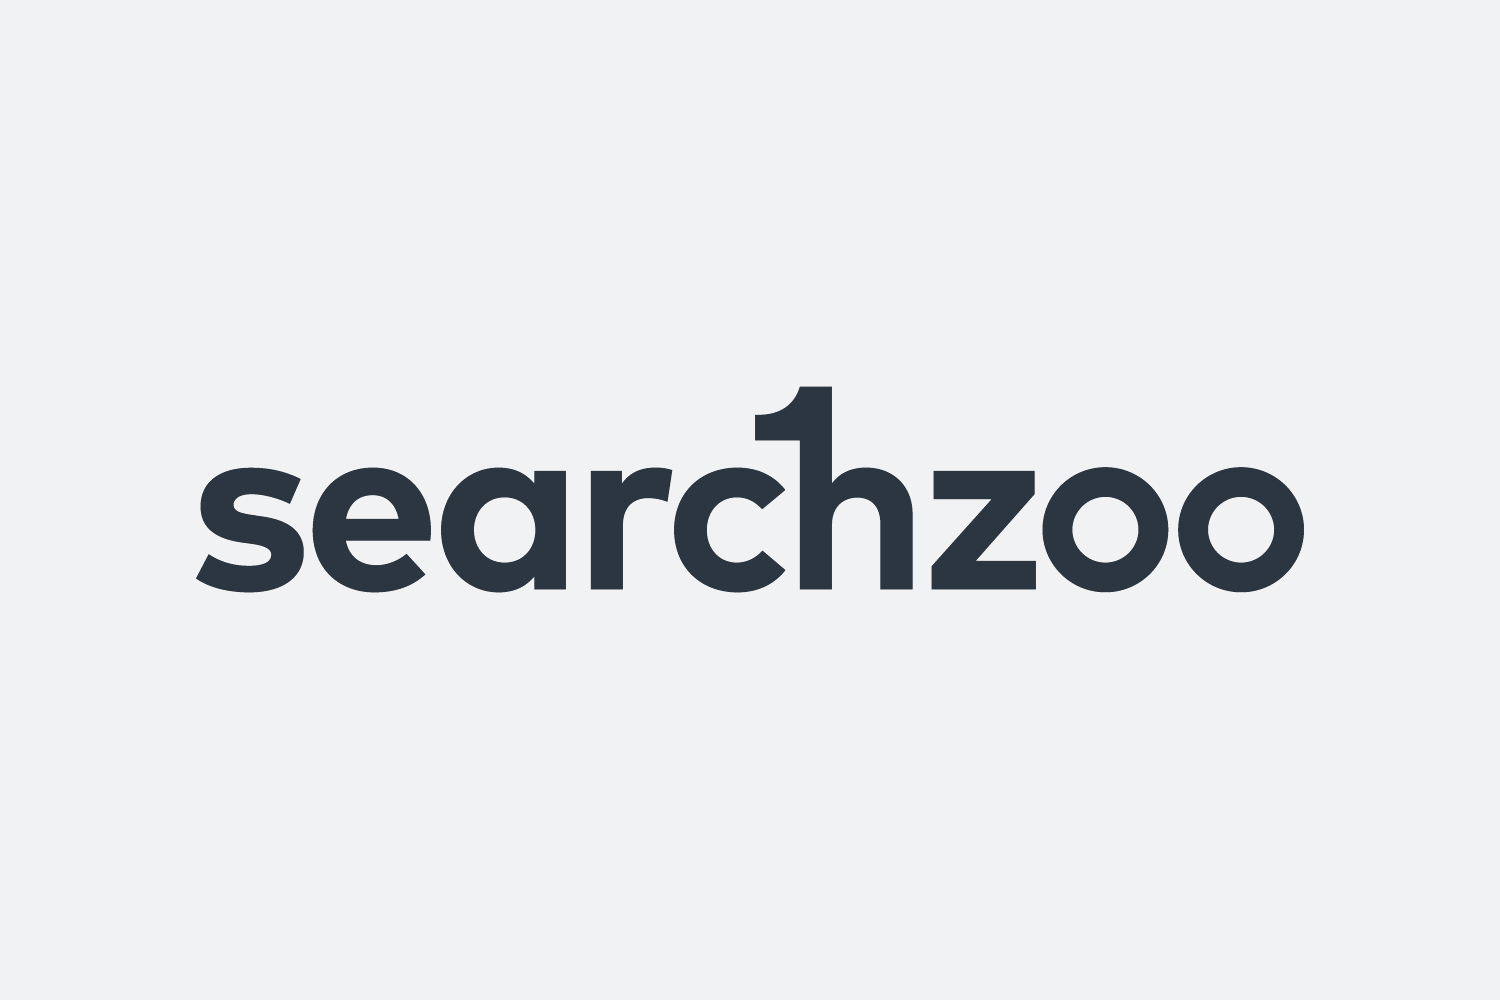 Logodesign til Searchzoo